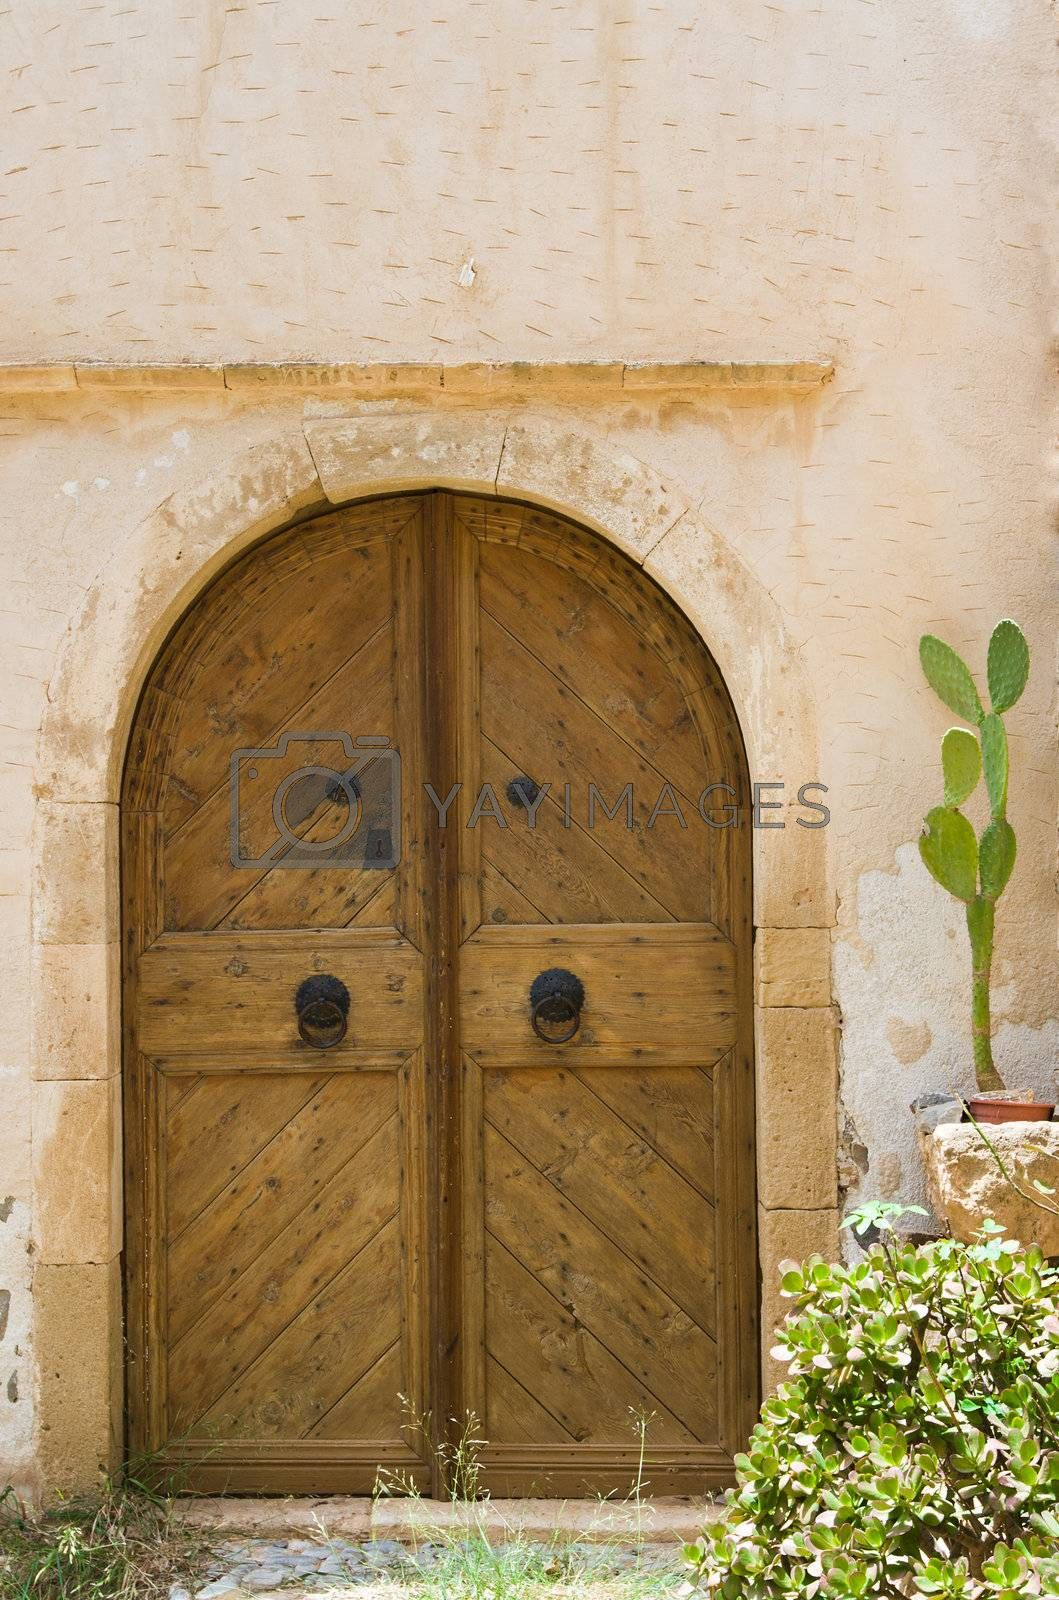 Wooden old style door with wrought handles. Entrance in ancient Mediterranean stone house and cactus